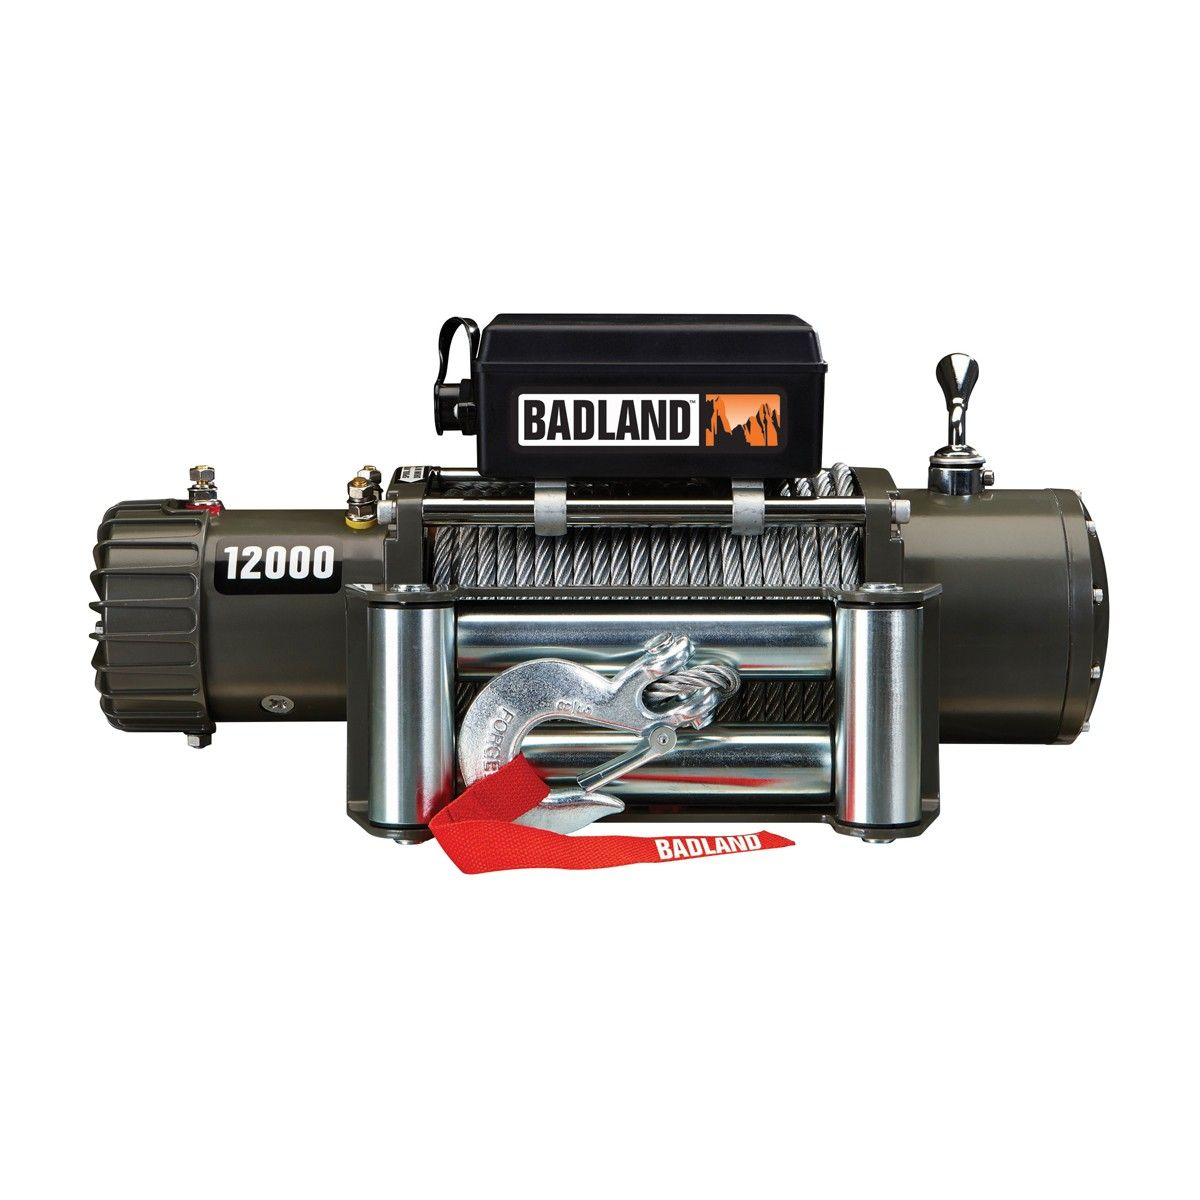 small resolution of 12000 lb off road vehicle electric winch with automatic load holding brake from harbor freight note there is a coupon that makes this item 299 in stores